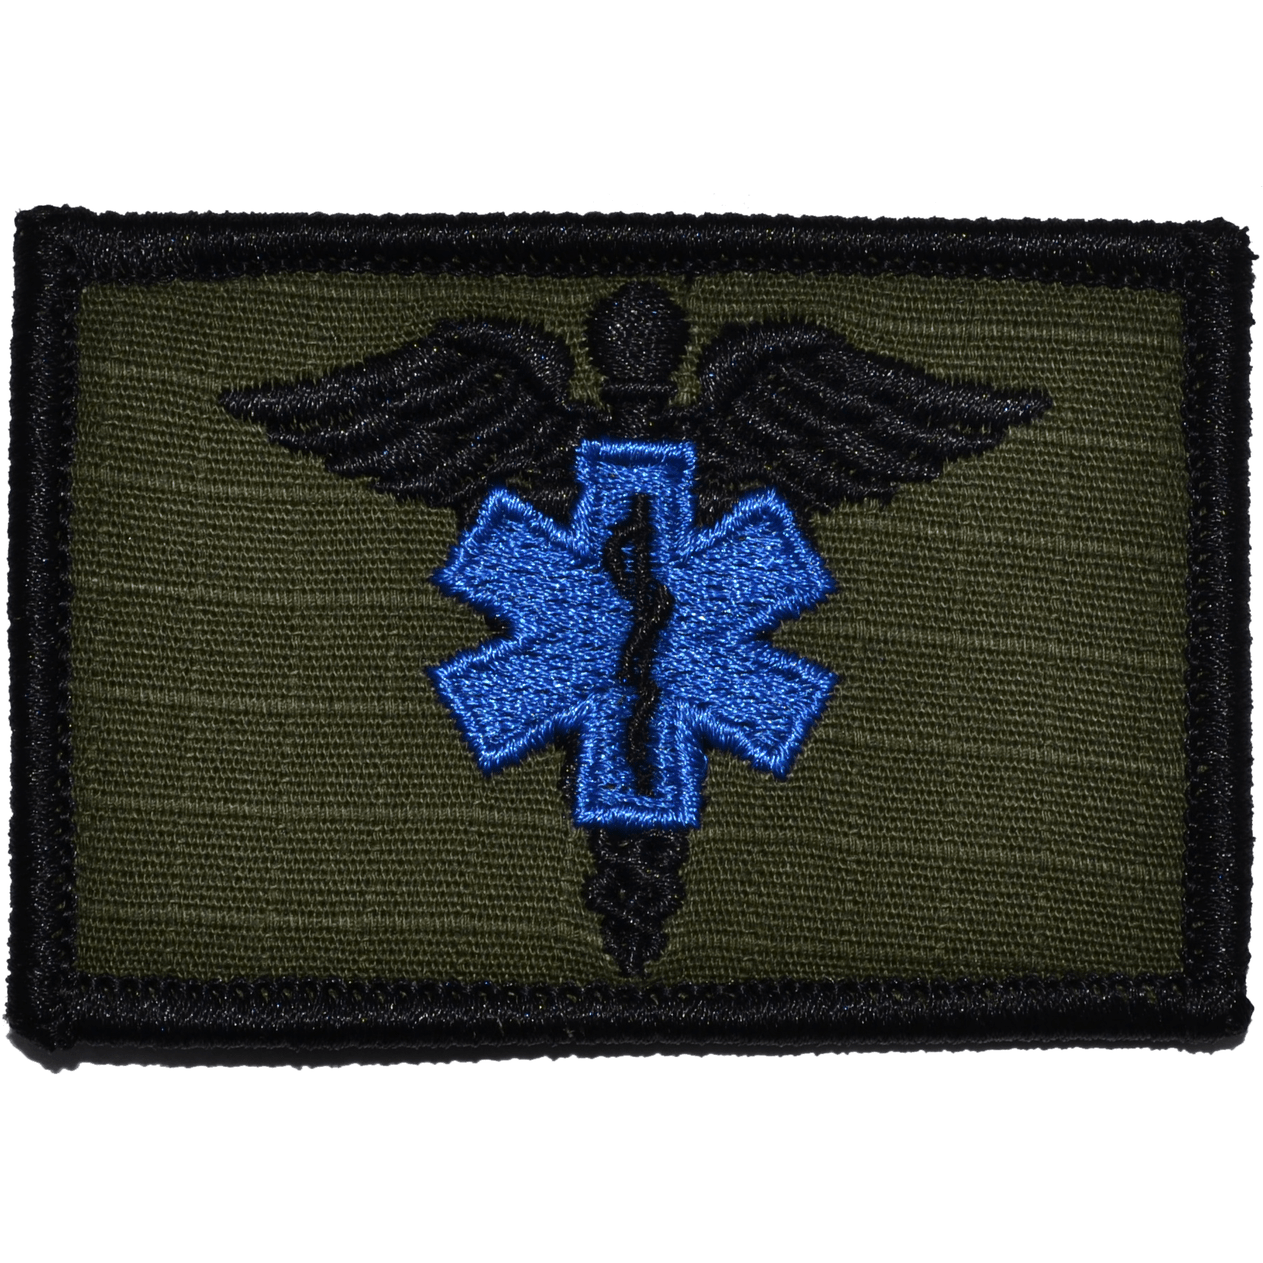 Tactical Gear Junkie Patches Olive Drab Caduceus Star of Life EMT - 2x3 Patch